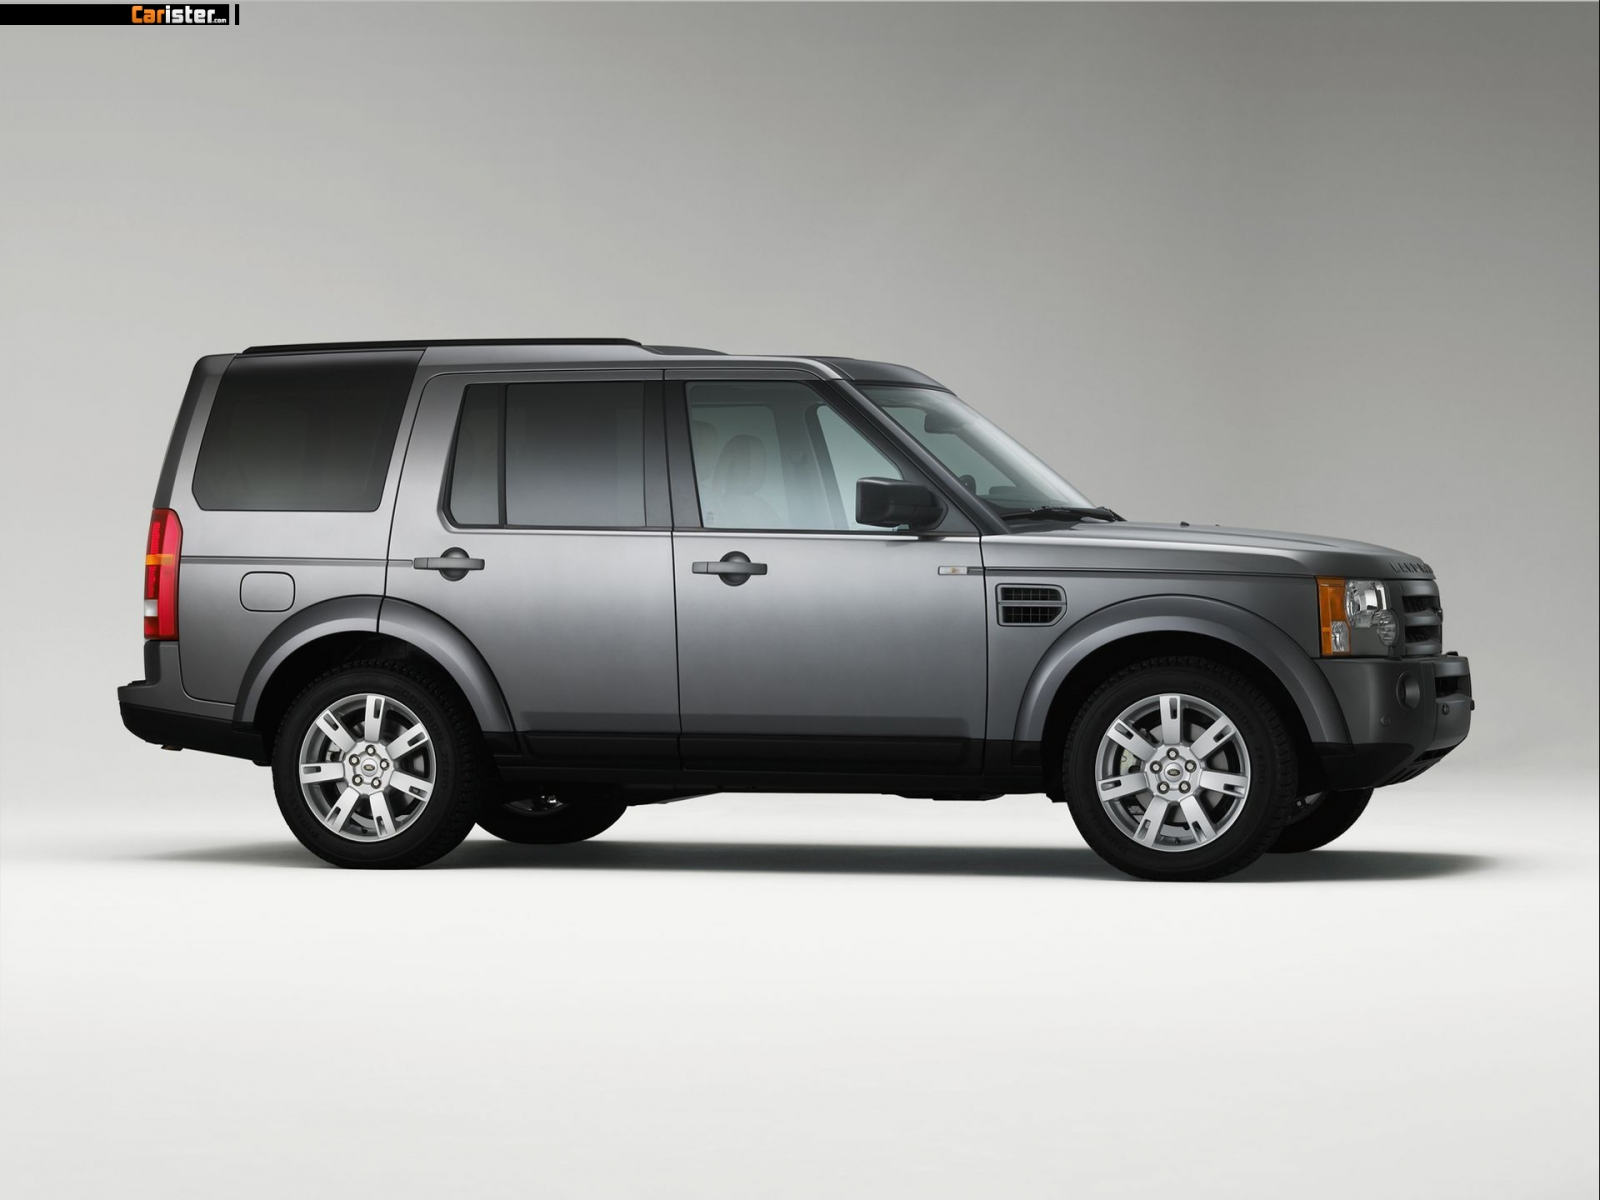 Land Rover Discovery 3 2009 - Photo 16 - Taille: 1600x1200